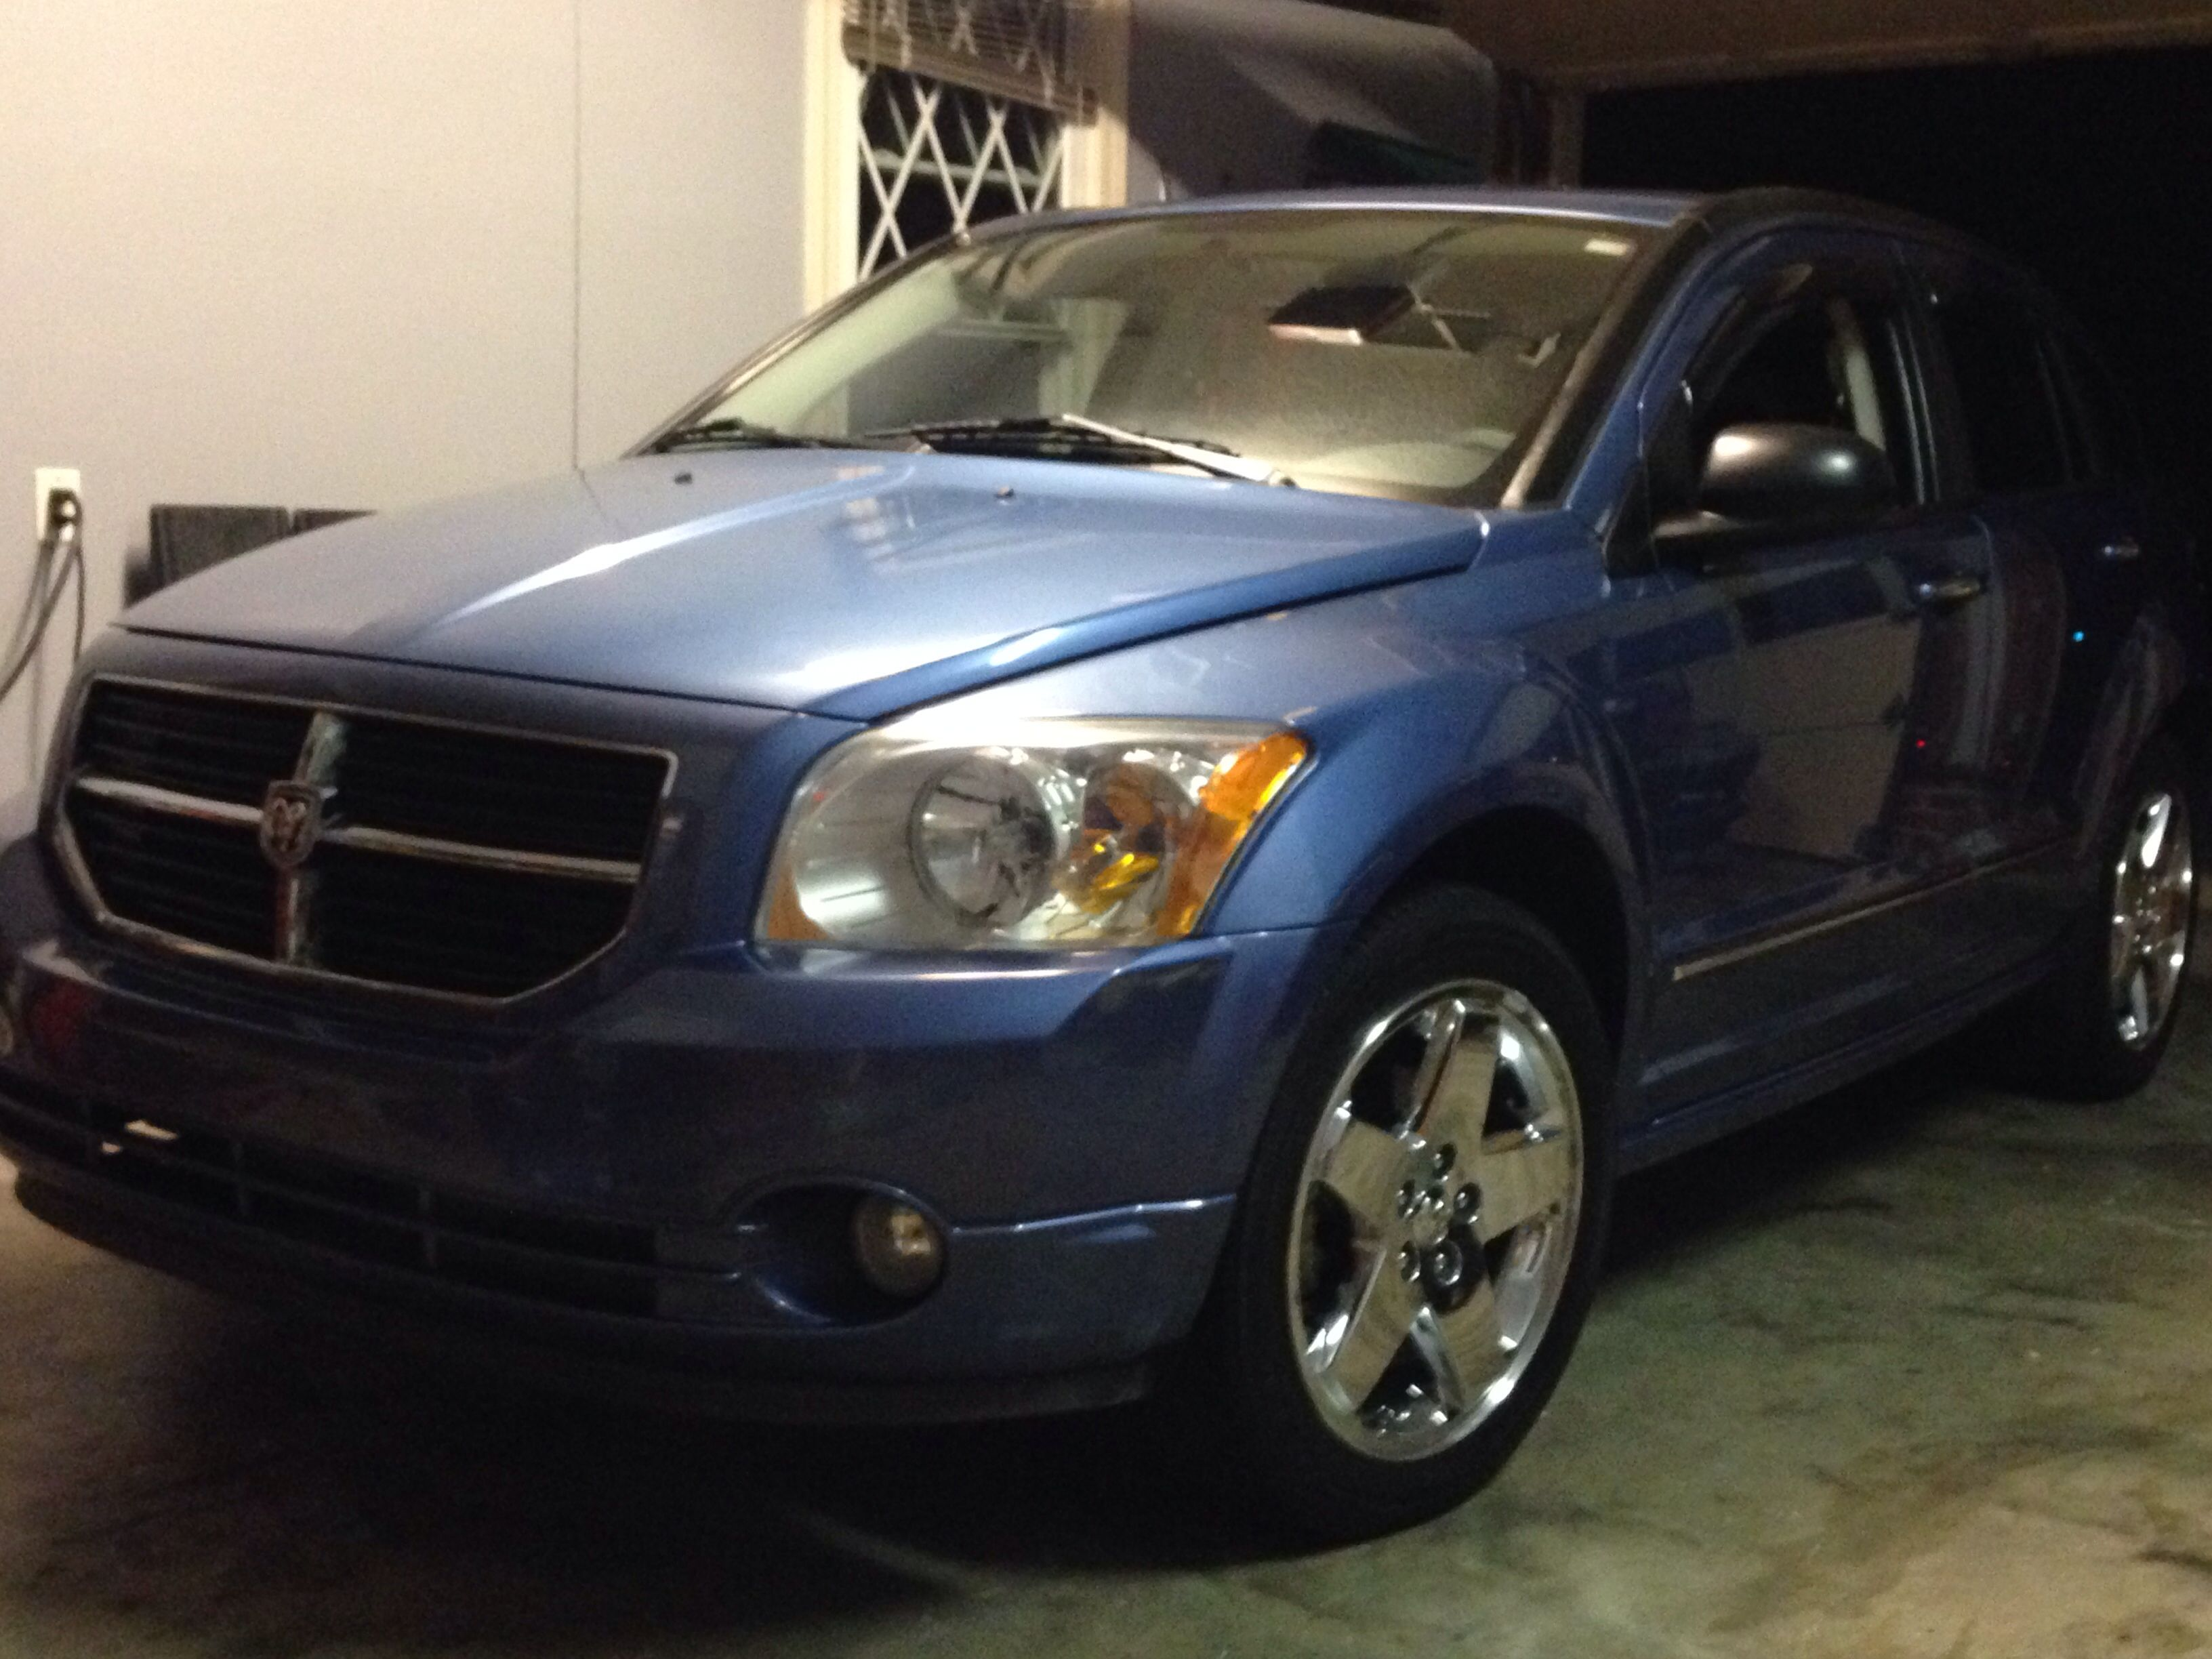 07 dodge caliber r/t awd | my car: care and accessories